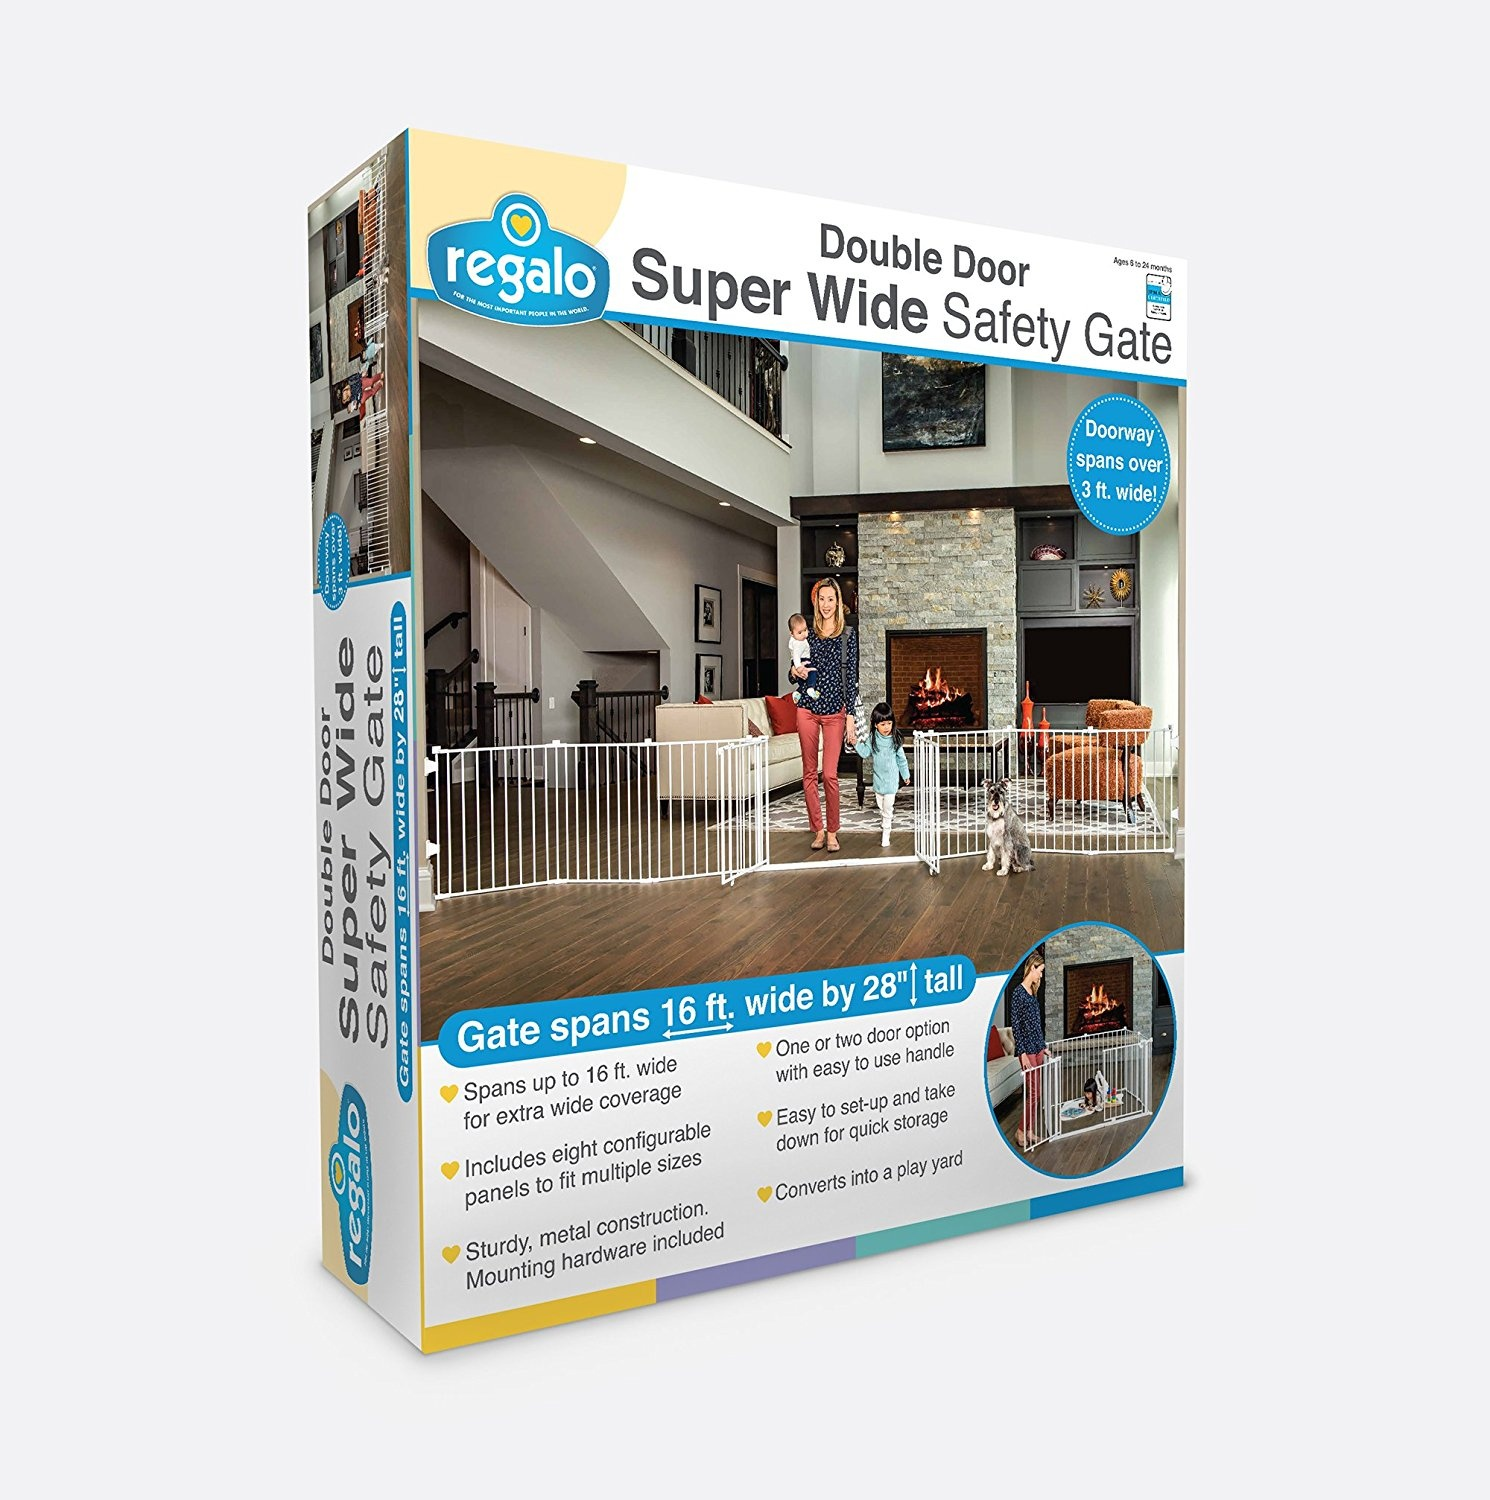 Regalo 8 Panel Double Door Super Wide Gate And Play Yard White